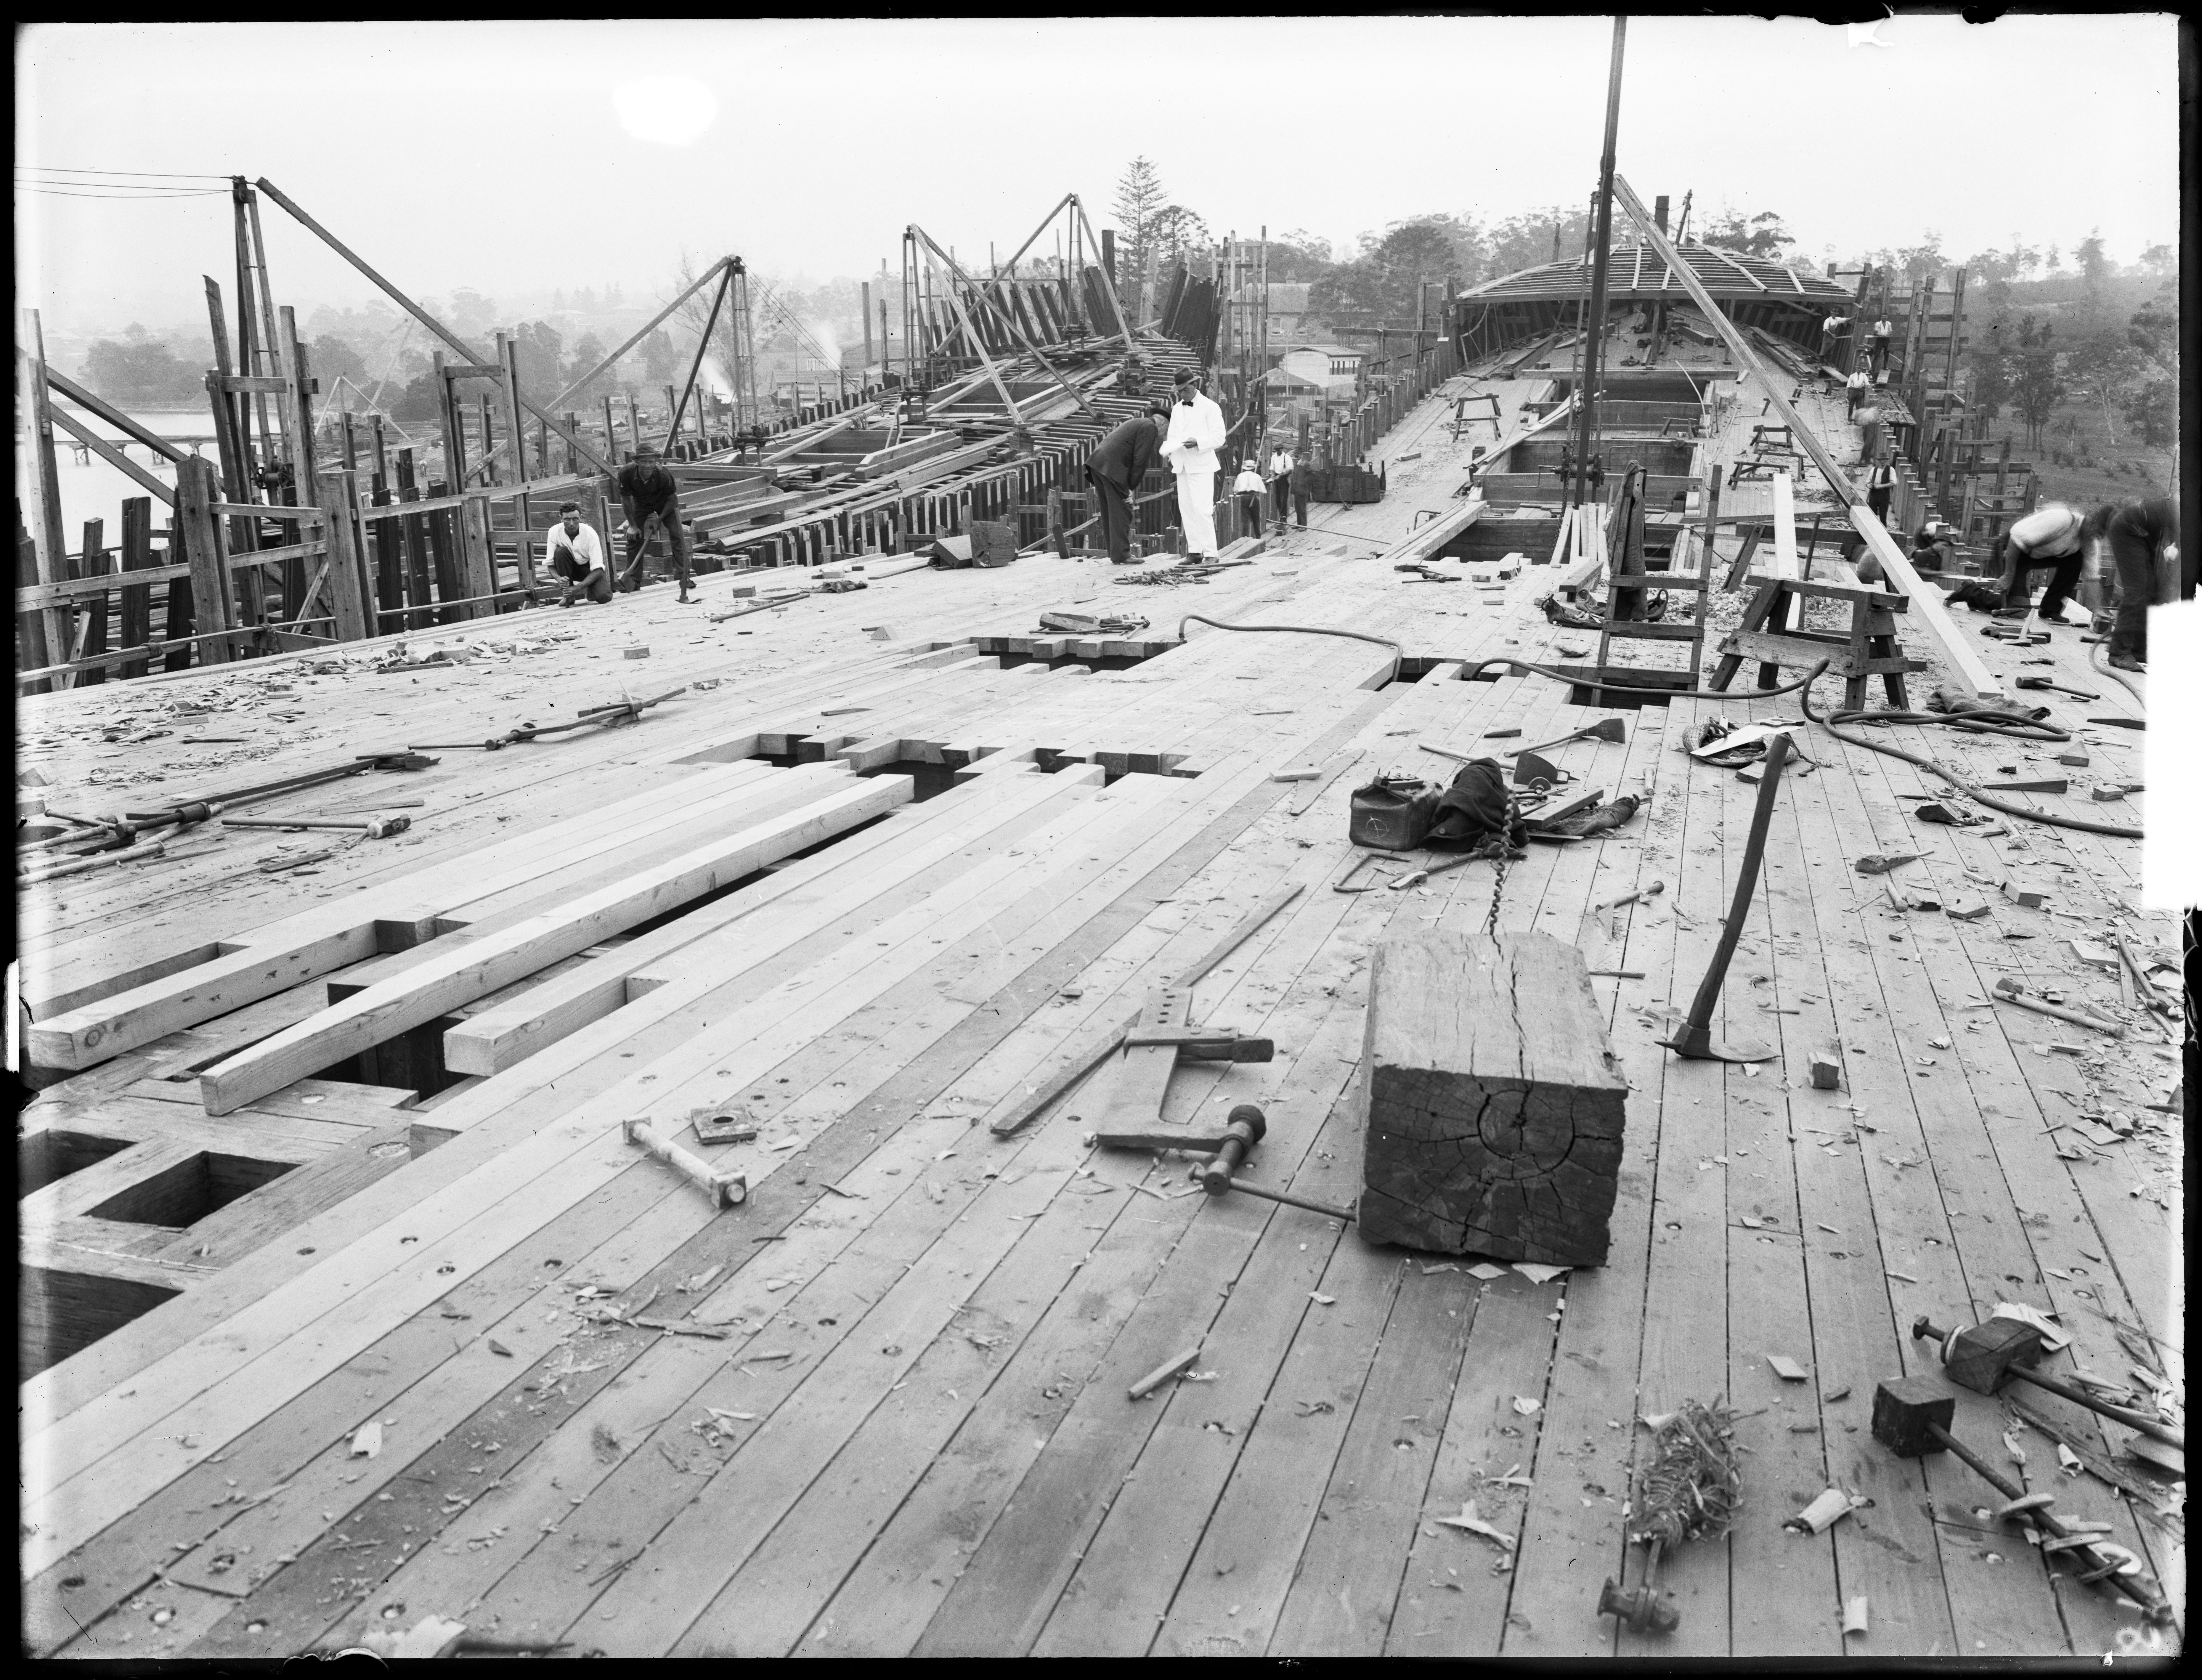 Braeside' and 'Burnside' under construction, Kidman & Mayoh, shipbuilders, Kissing Point Park, Ryde, Sydney, c. 1920, Arthur Ernest Foster